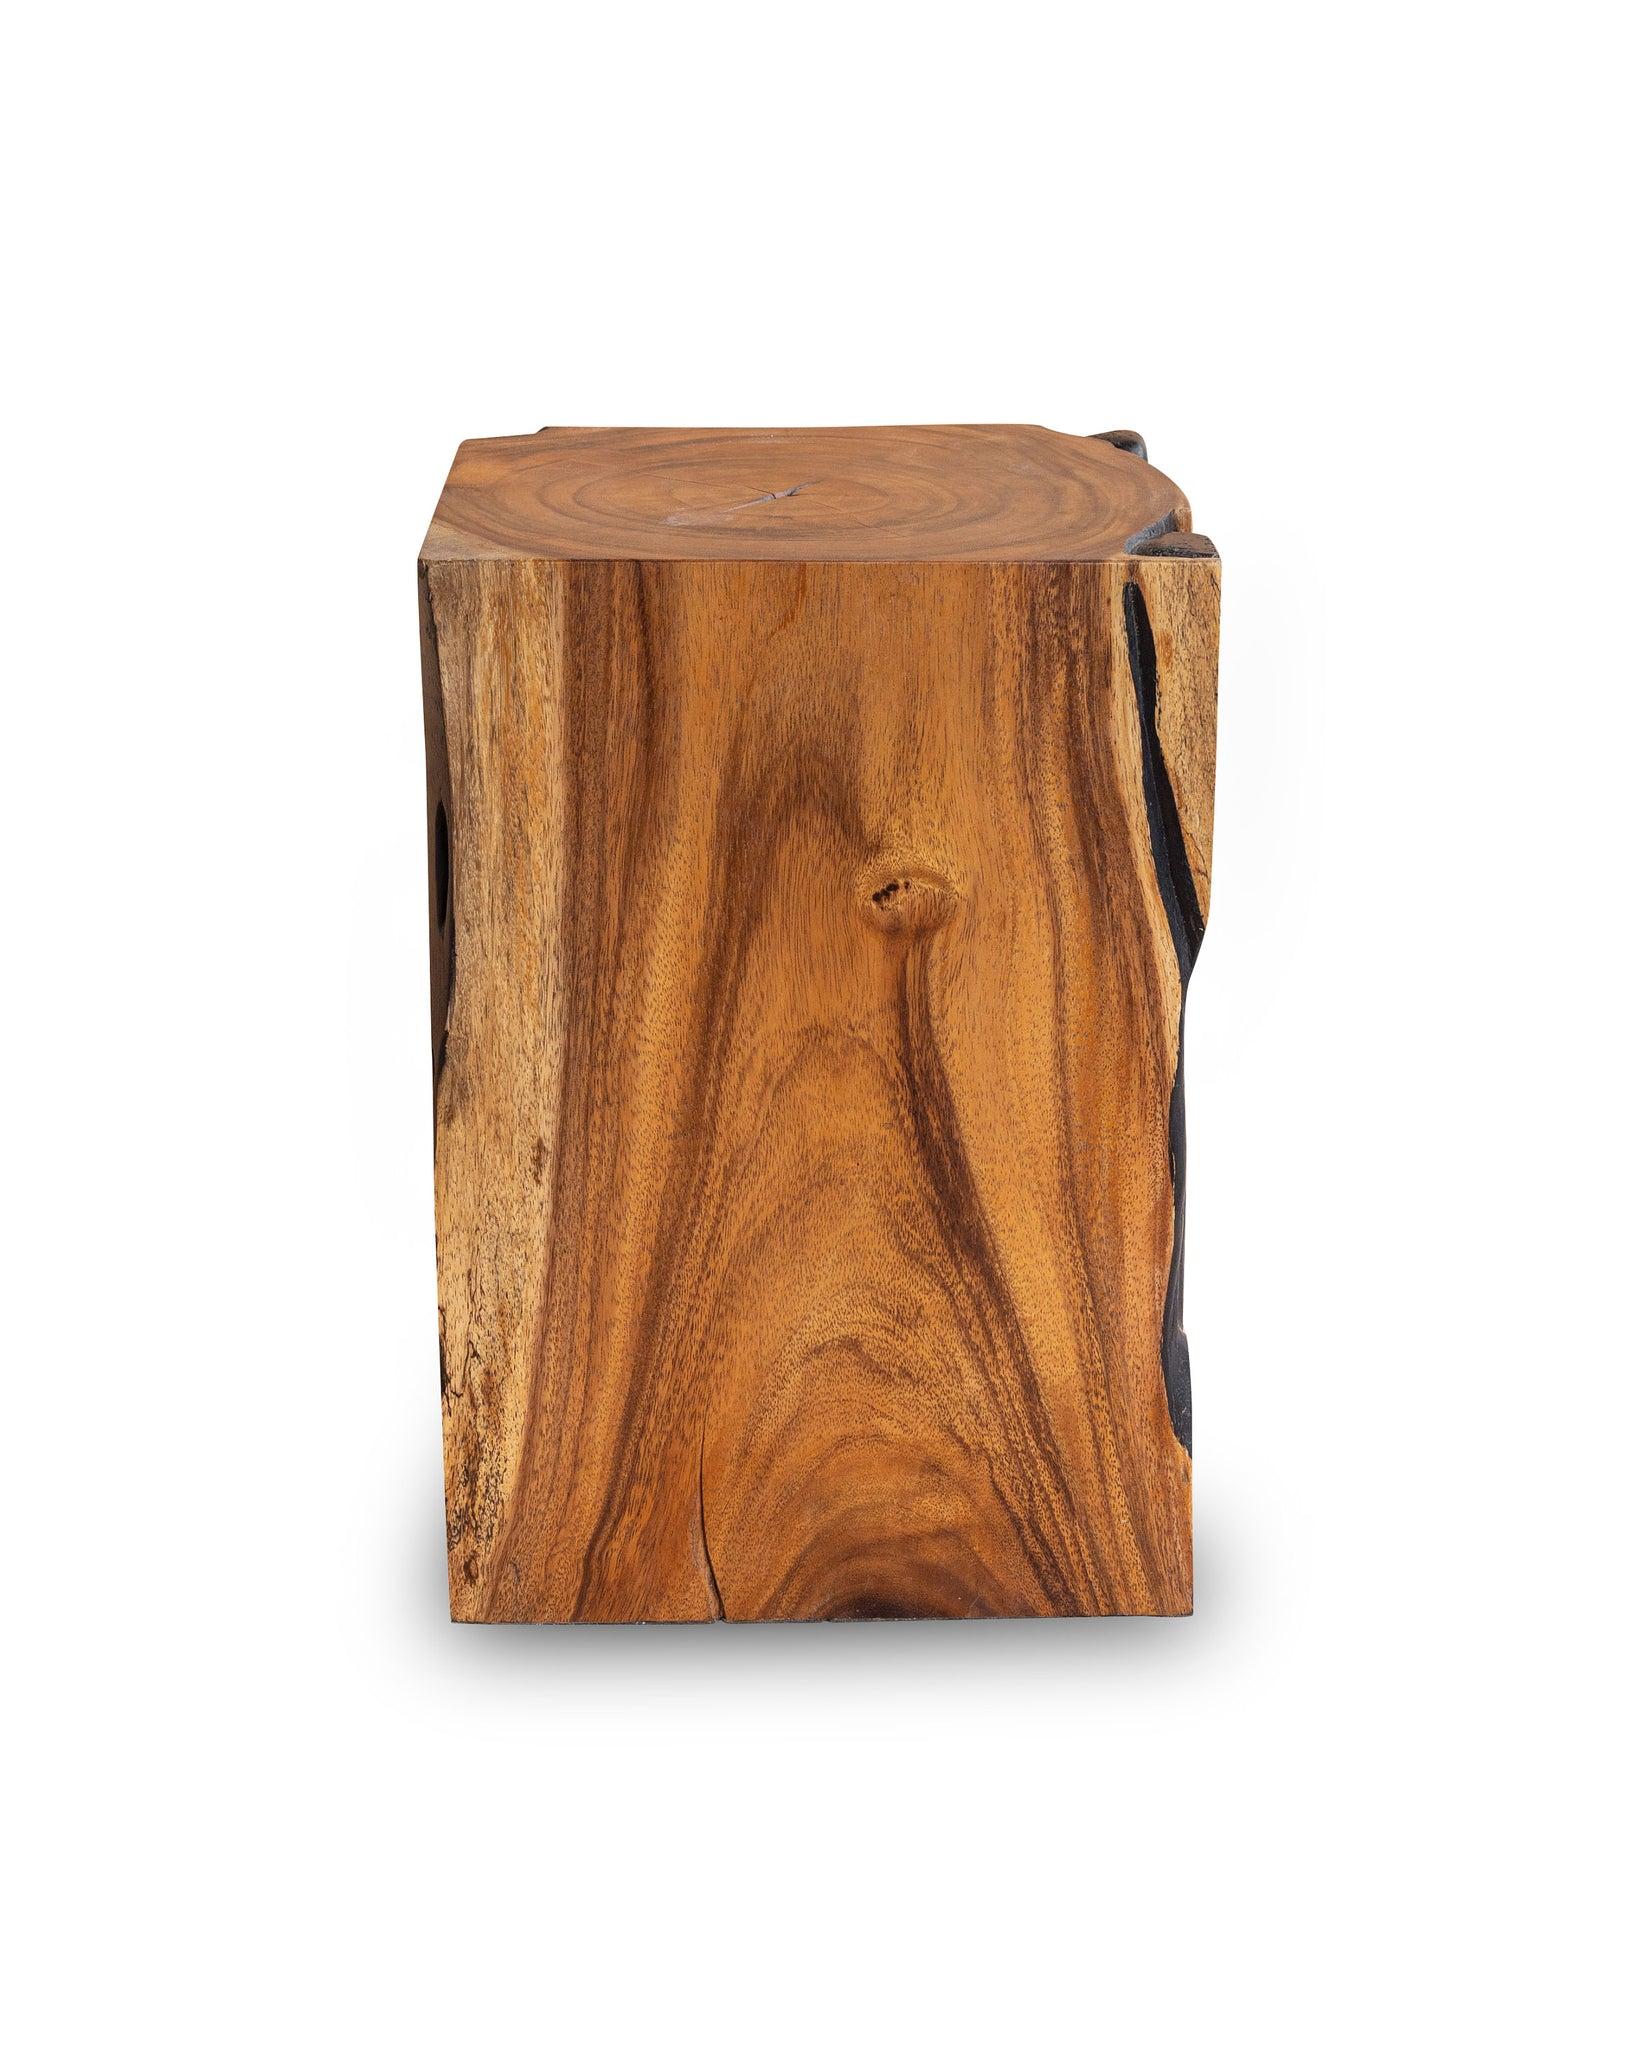 Picture of: Square Solid Acacia Wood Side Table Black And Brown Natural Tree Stum Arka Living